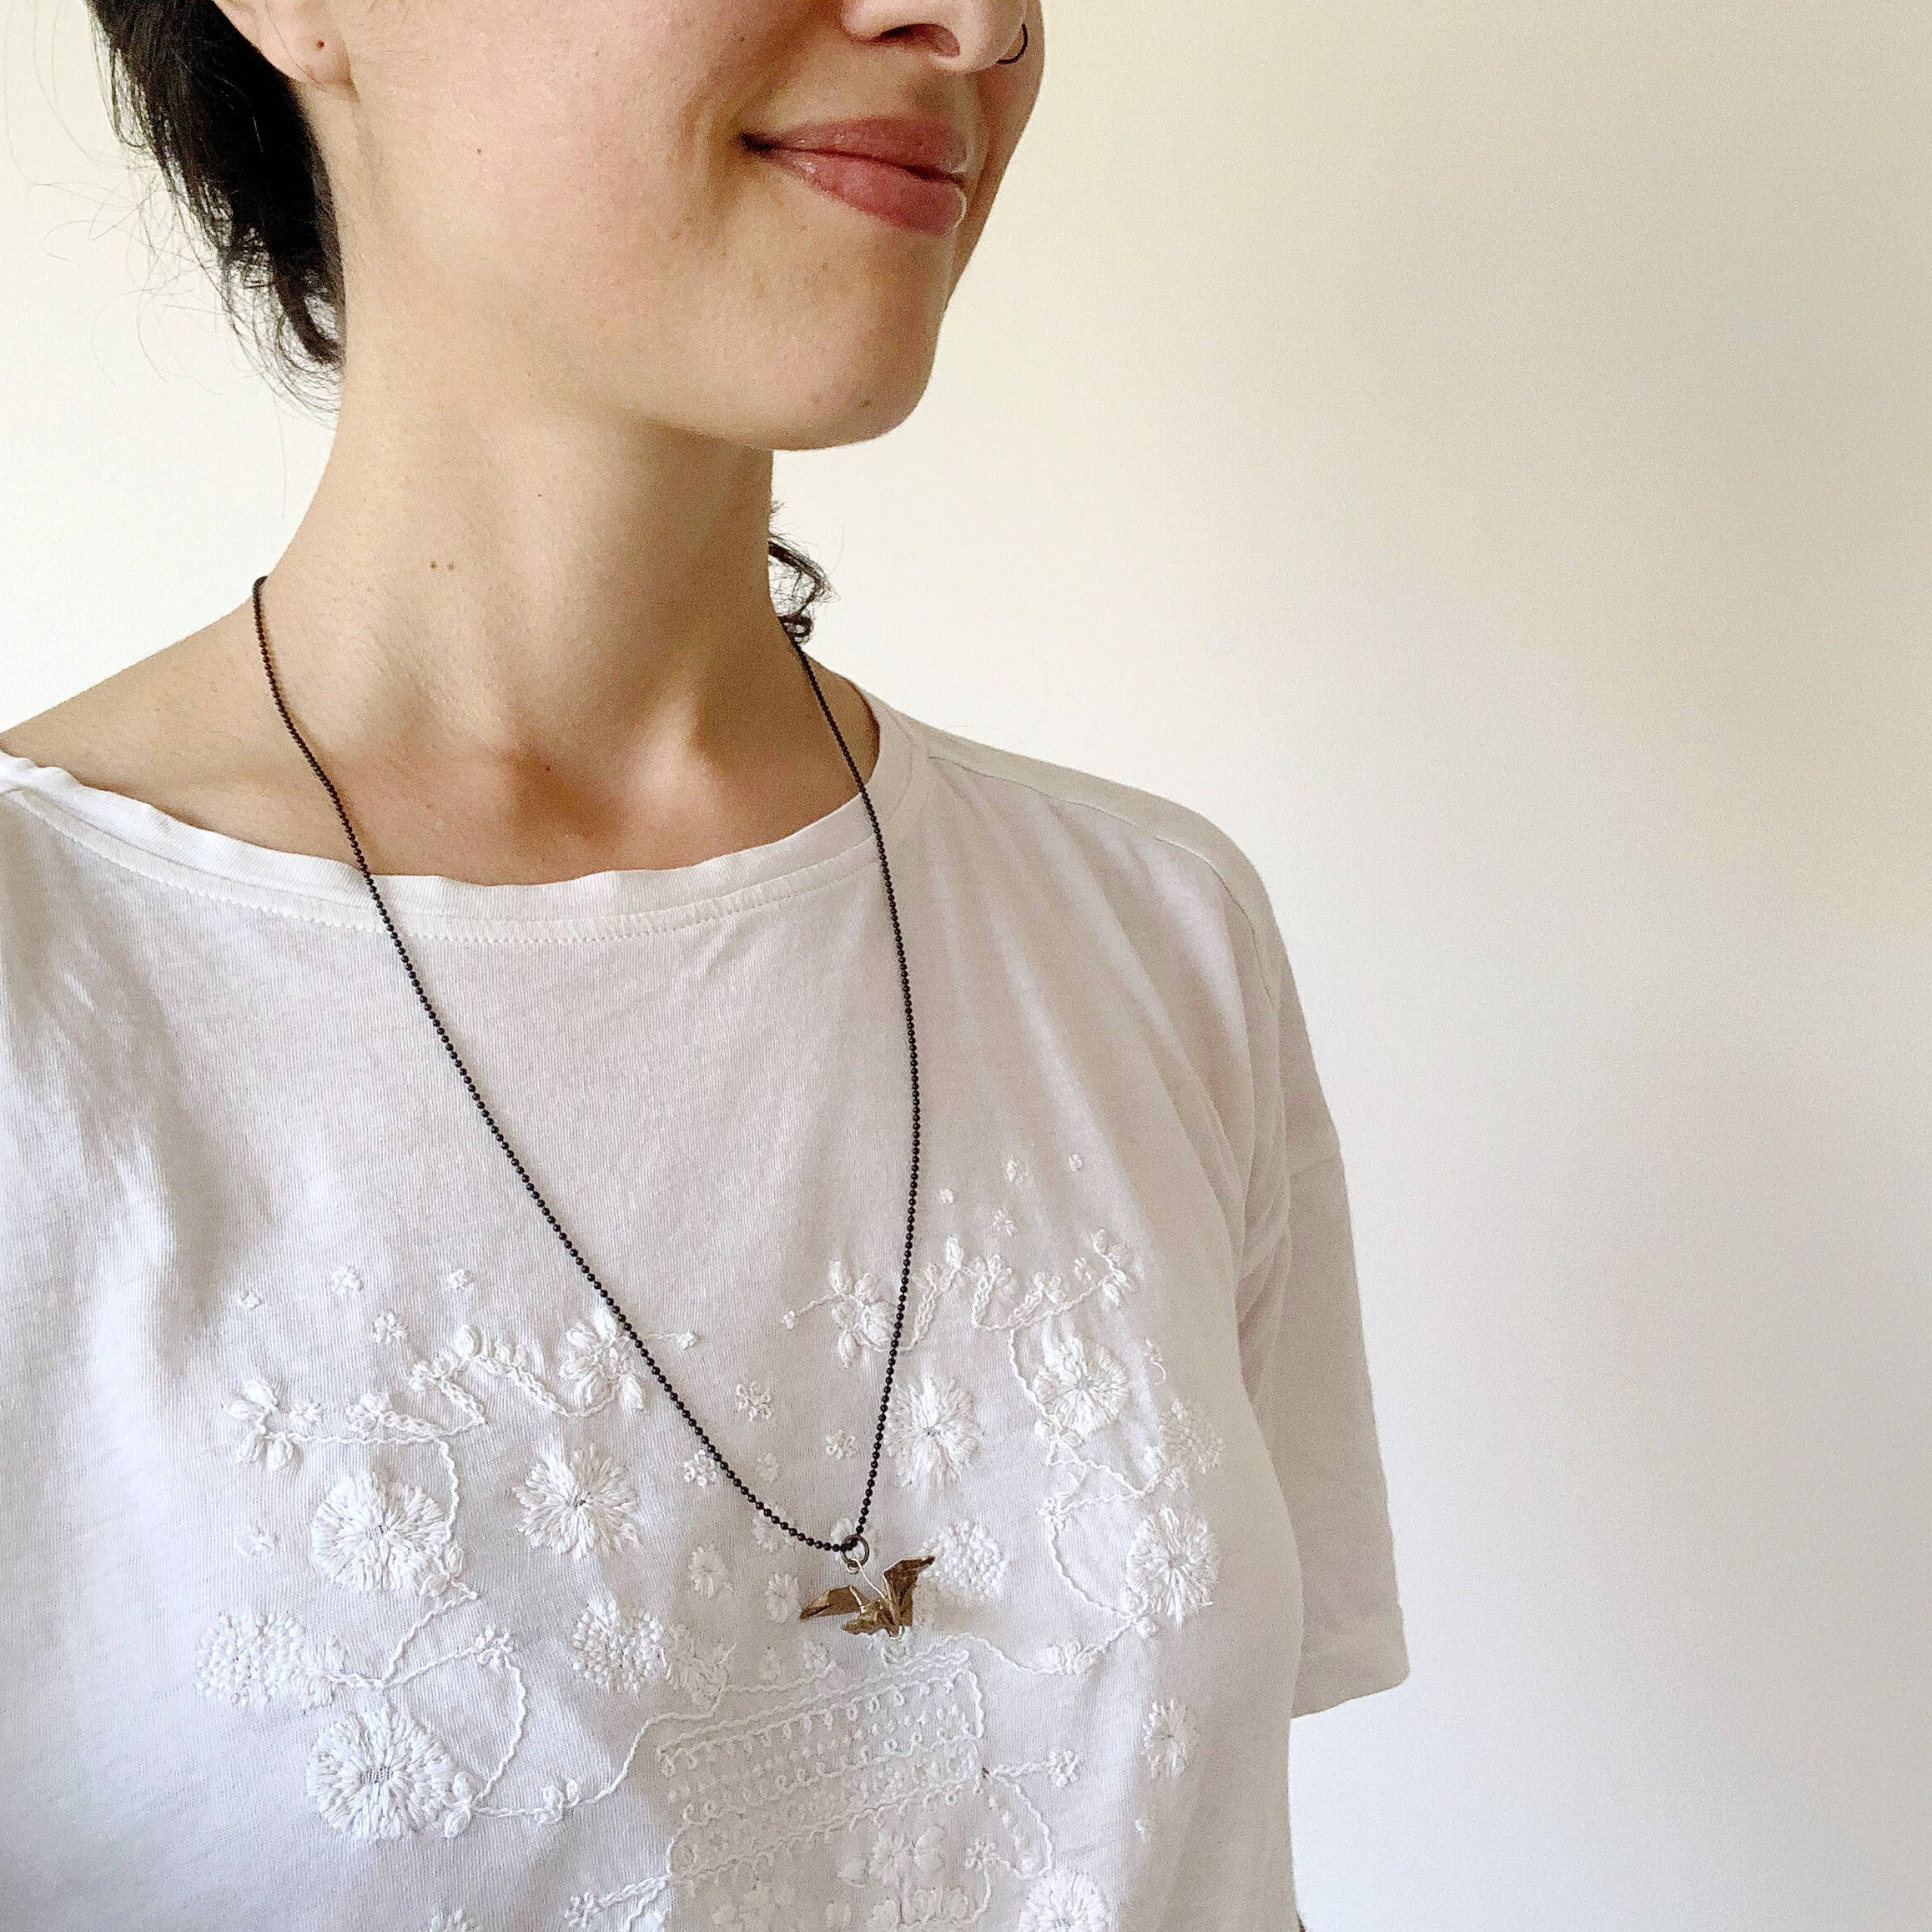 Personalized handmade origami dragon necklace